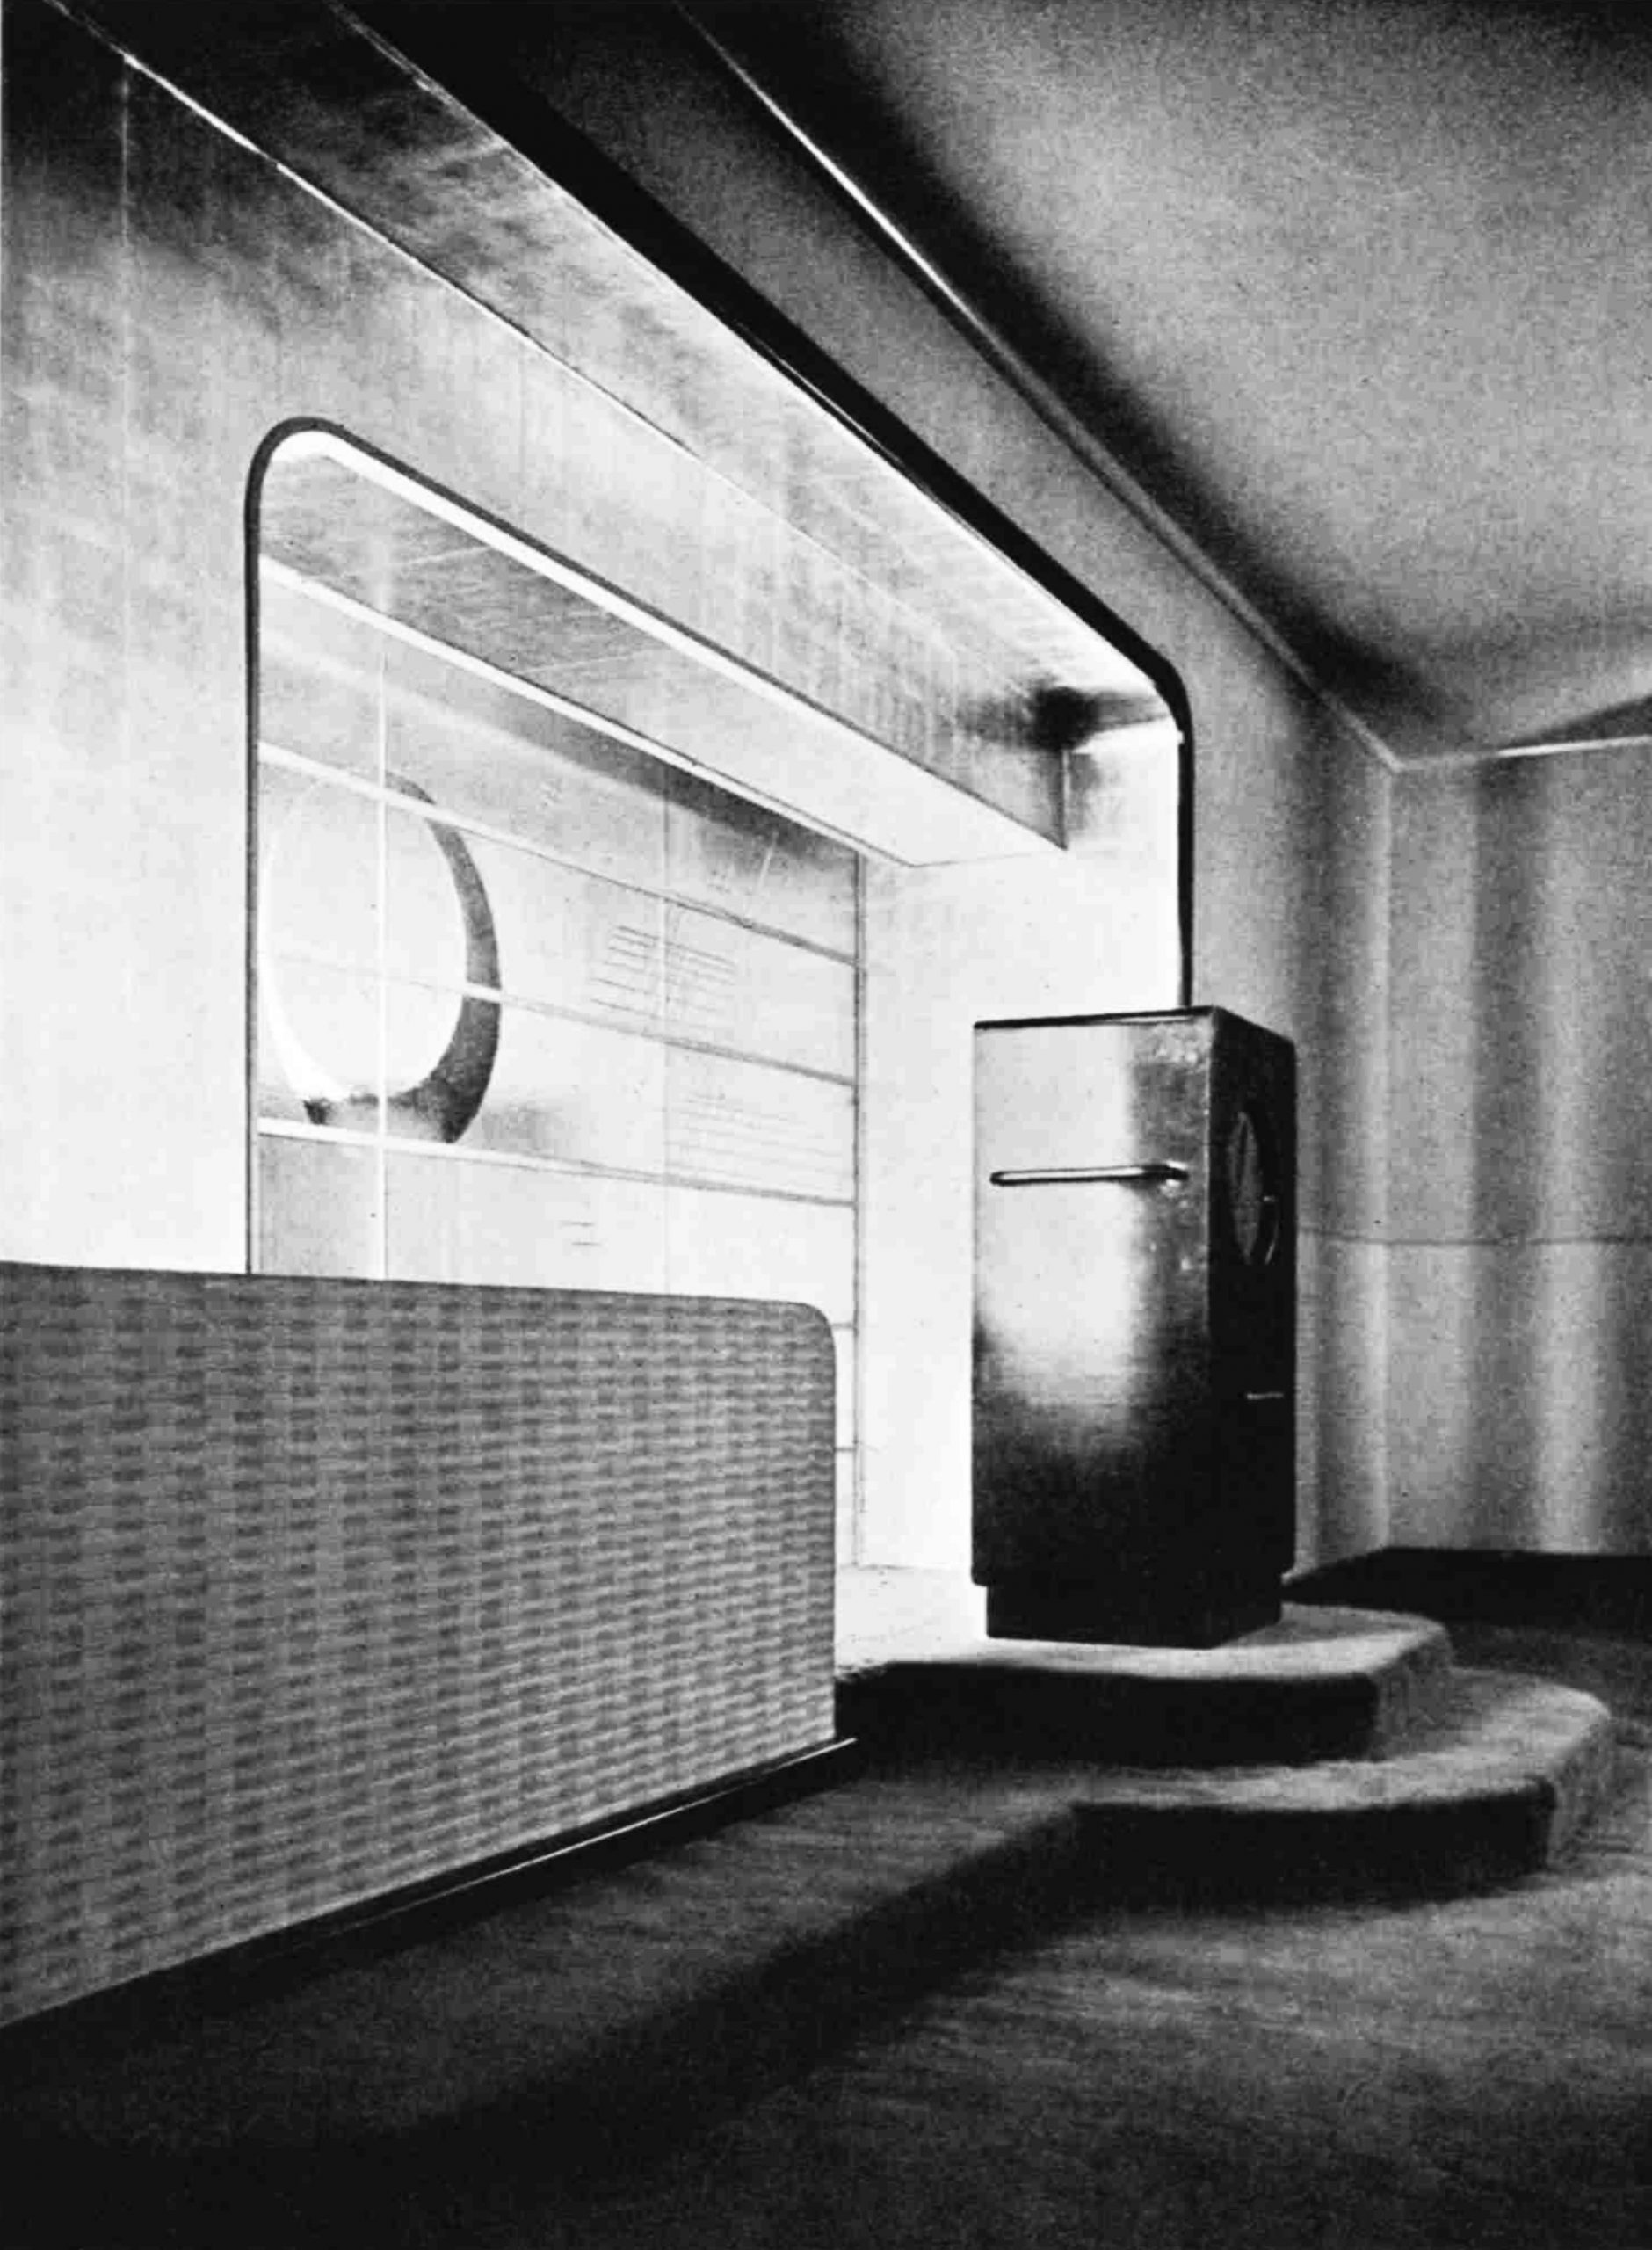 A large radio sits in front of a decorated recess